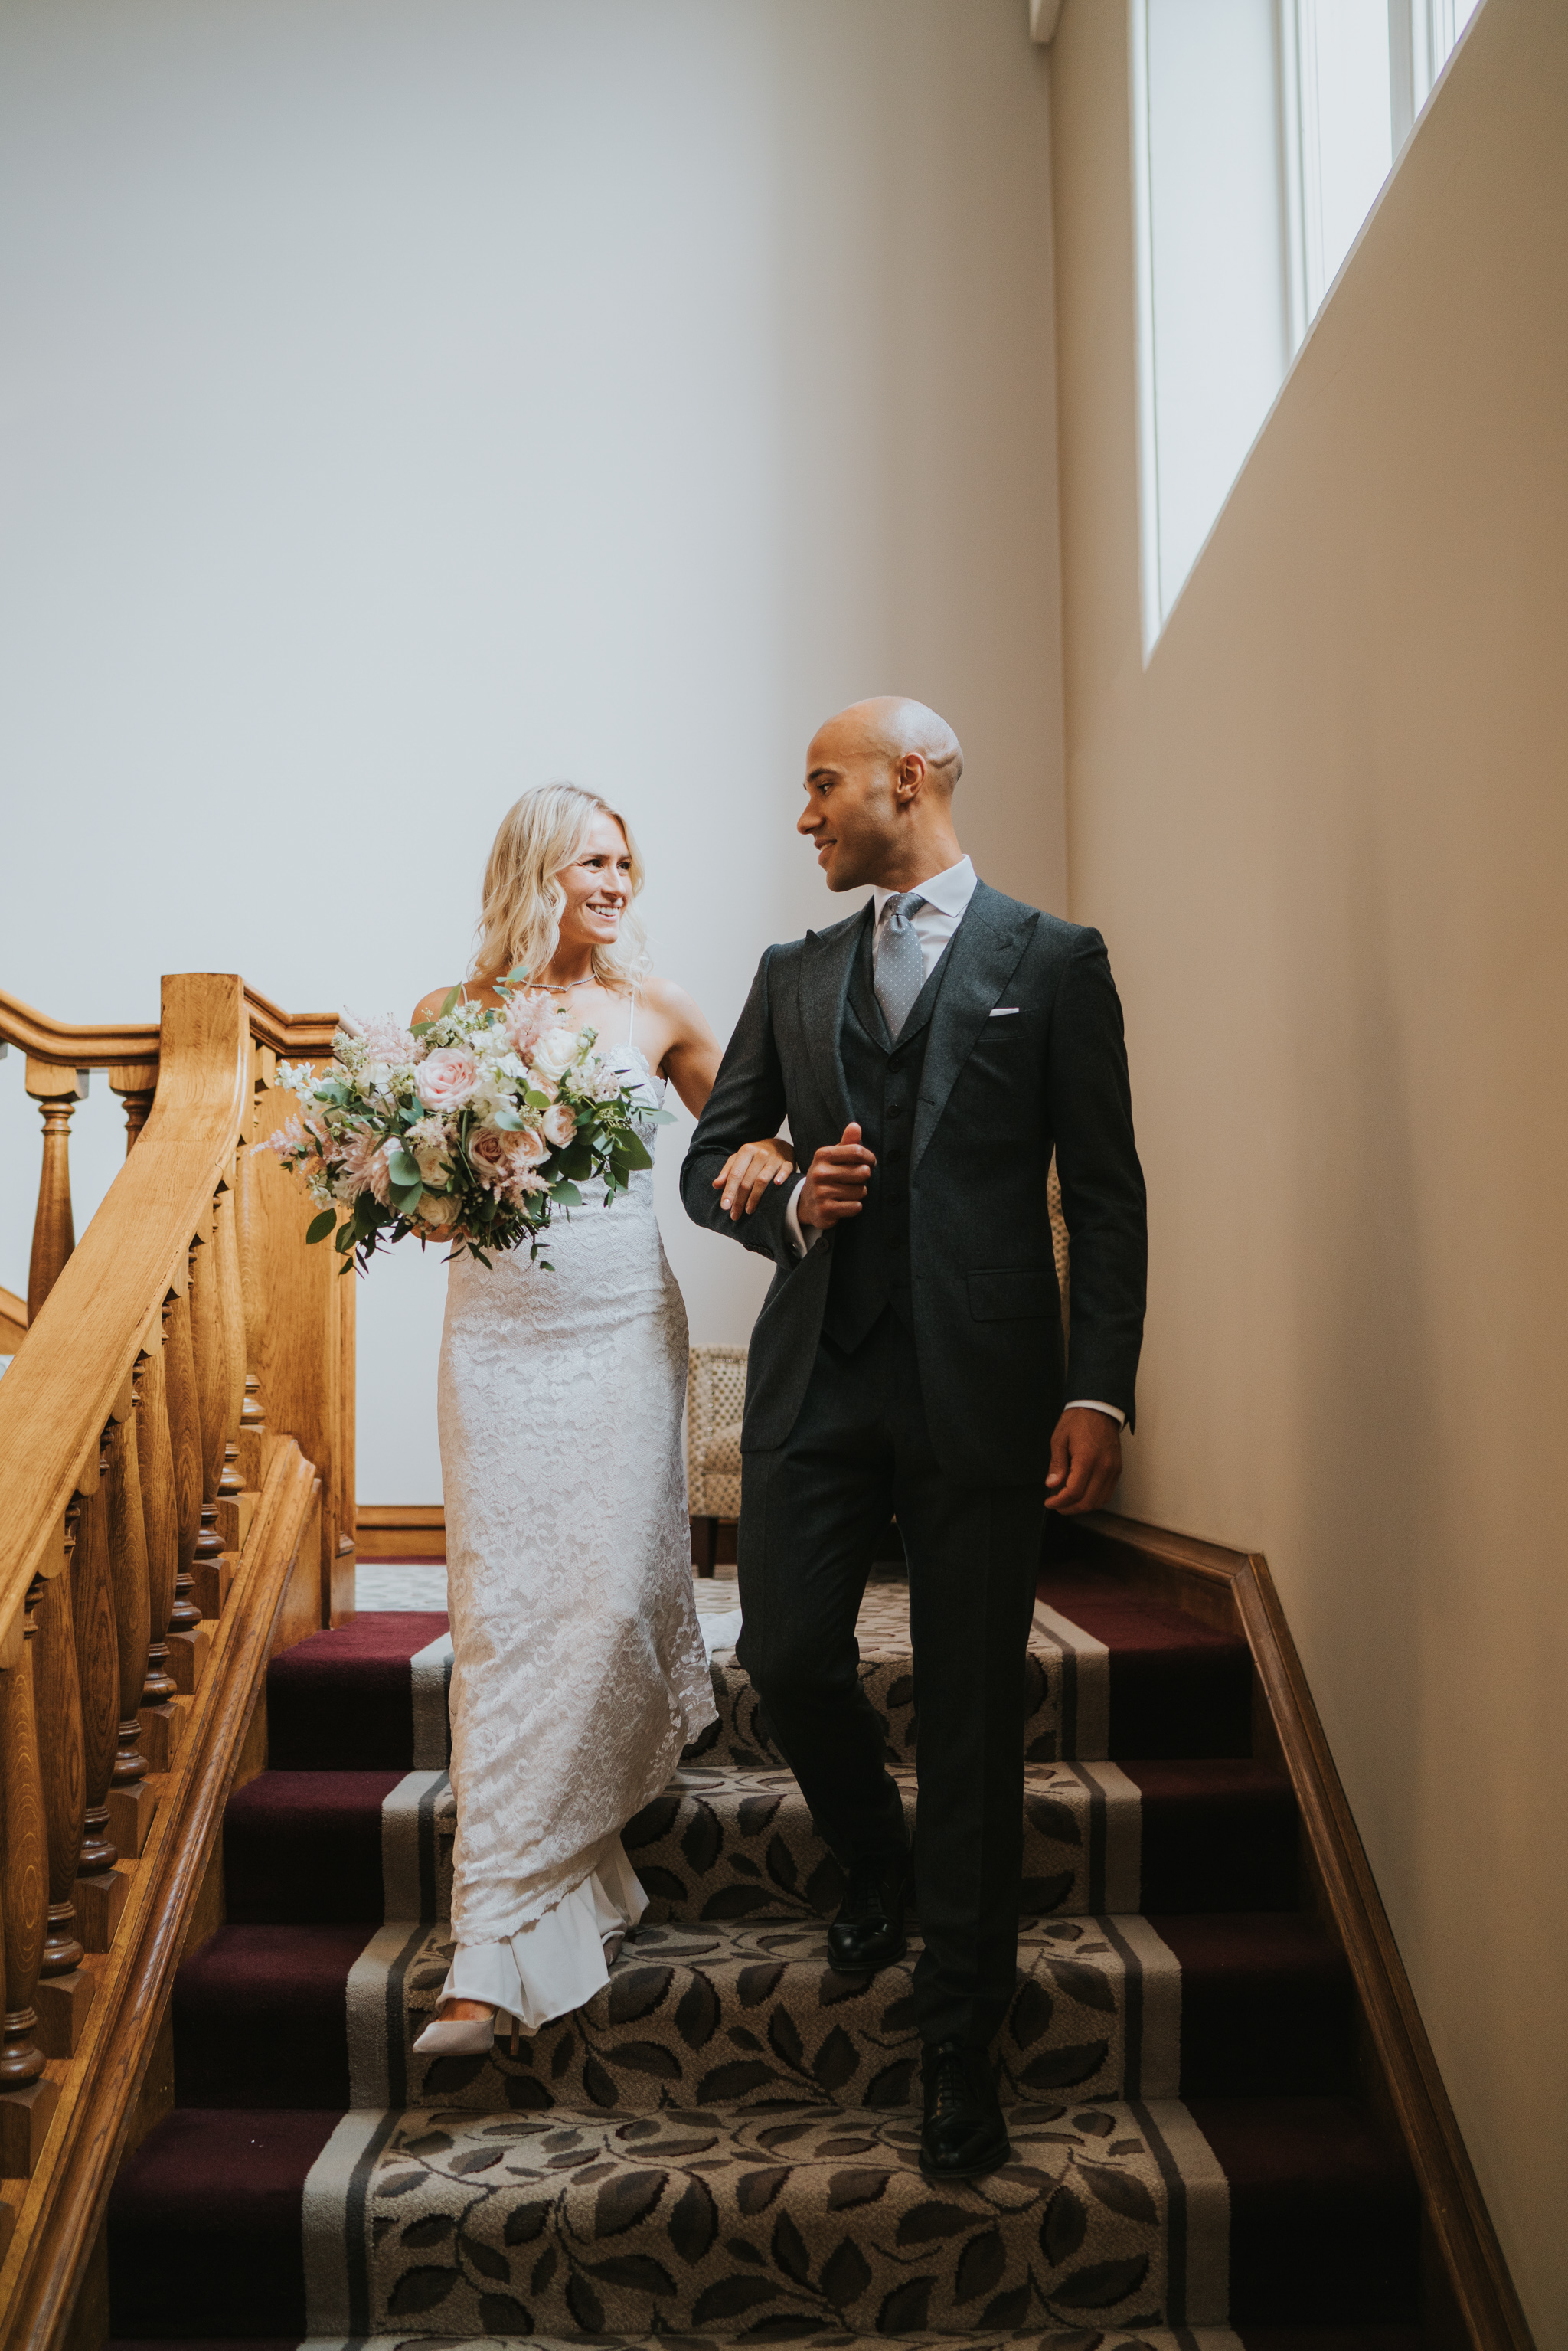 intimate-english-church-wedding-sarah-alex-colchester-essex-grace-elizabeth-colchester-essex-alternative-wedding-lifestyle-photographer-essex-suffolk-norfolk-devon (10 of 92).jpg